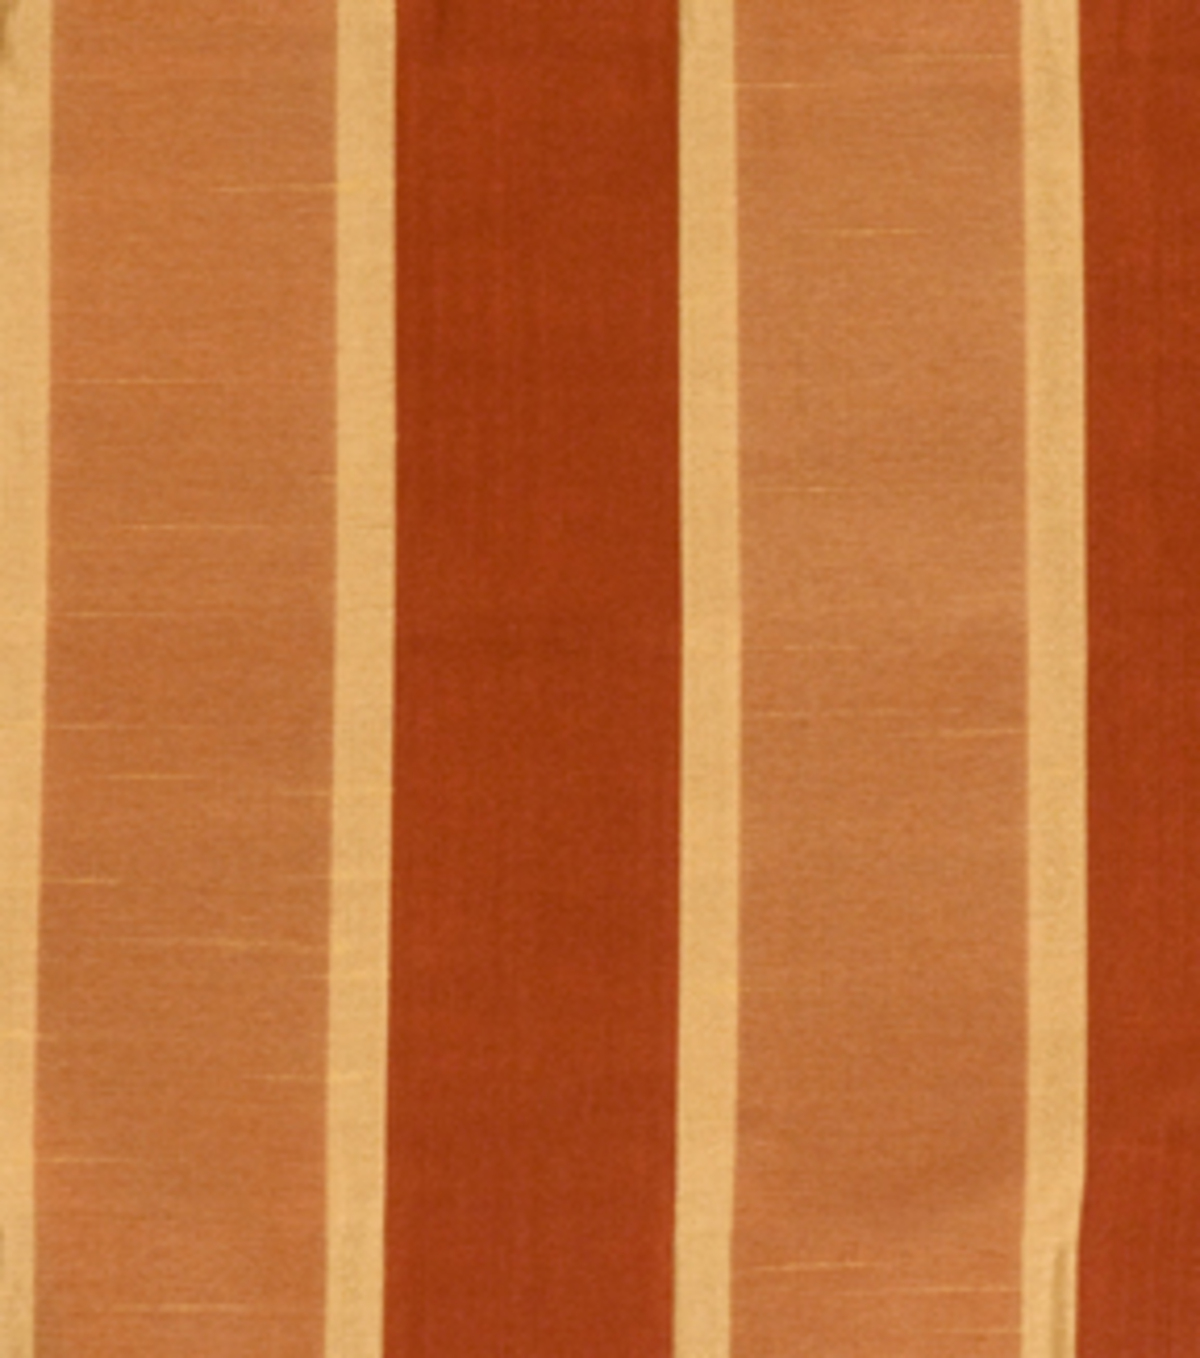 Home Decor 8\u0022x8\u0022 Fabric Swatch-Print Fabric Eaton Square Powell Sienna